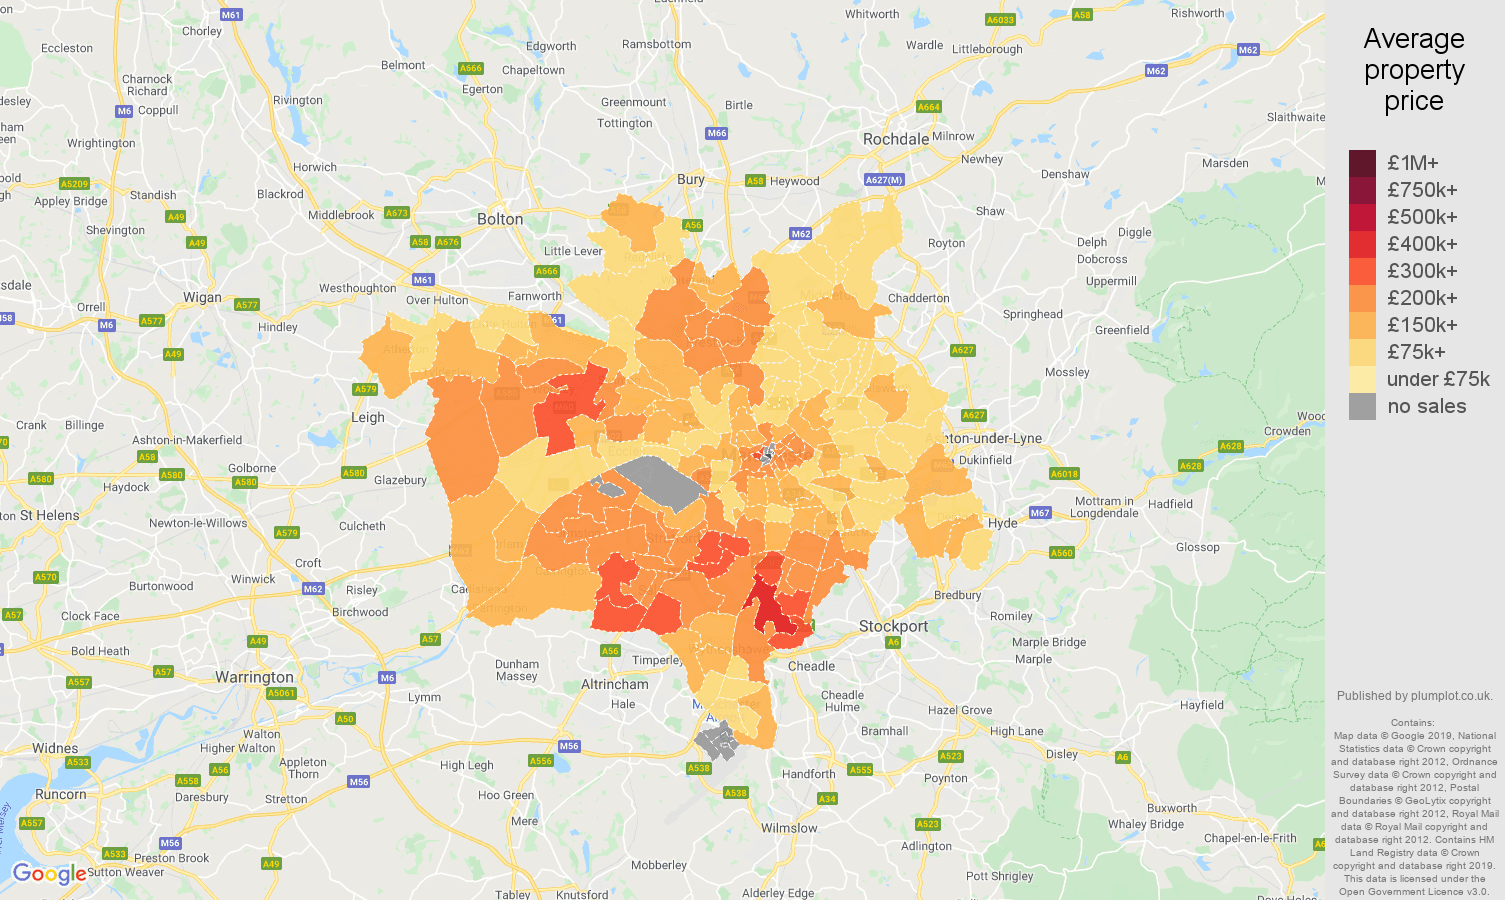 Manchester house prices map